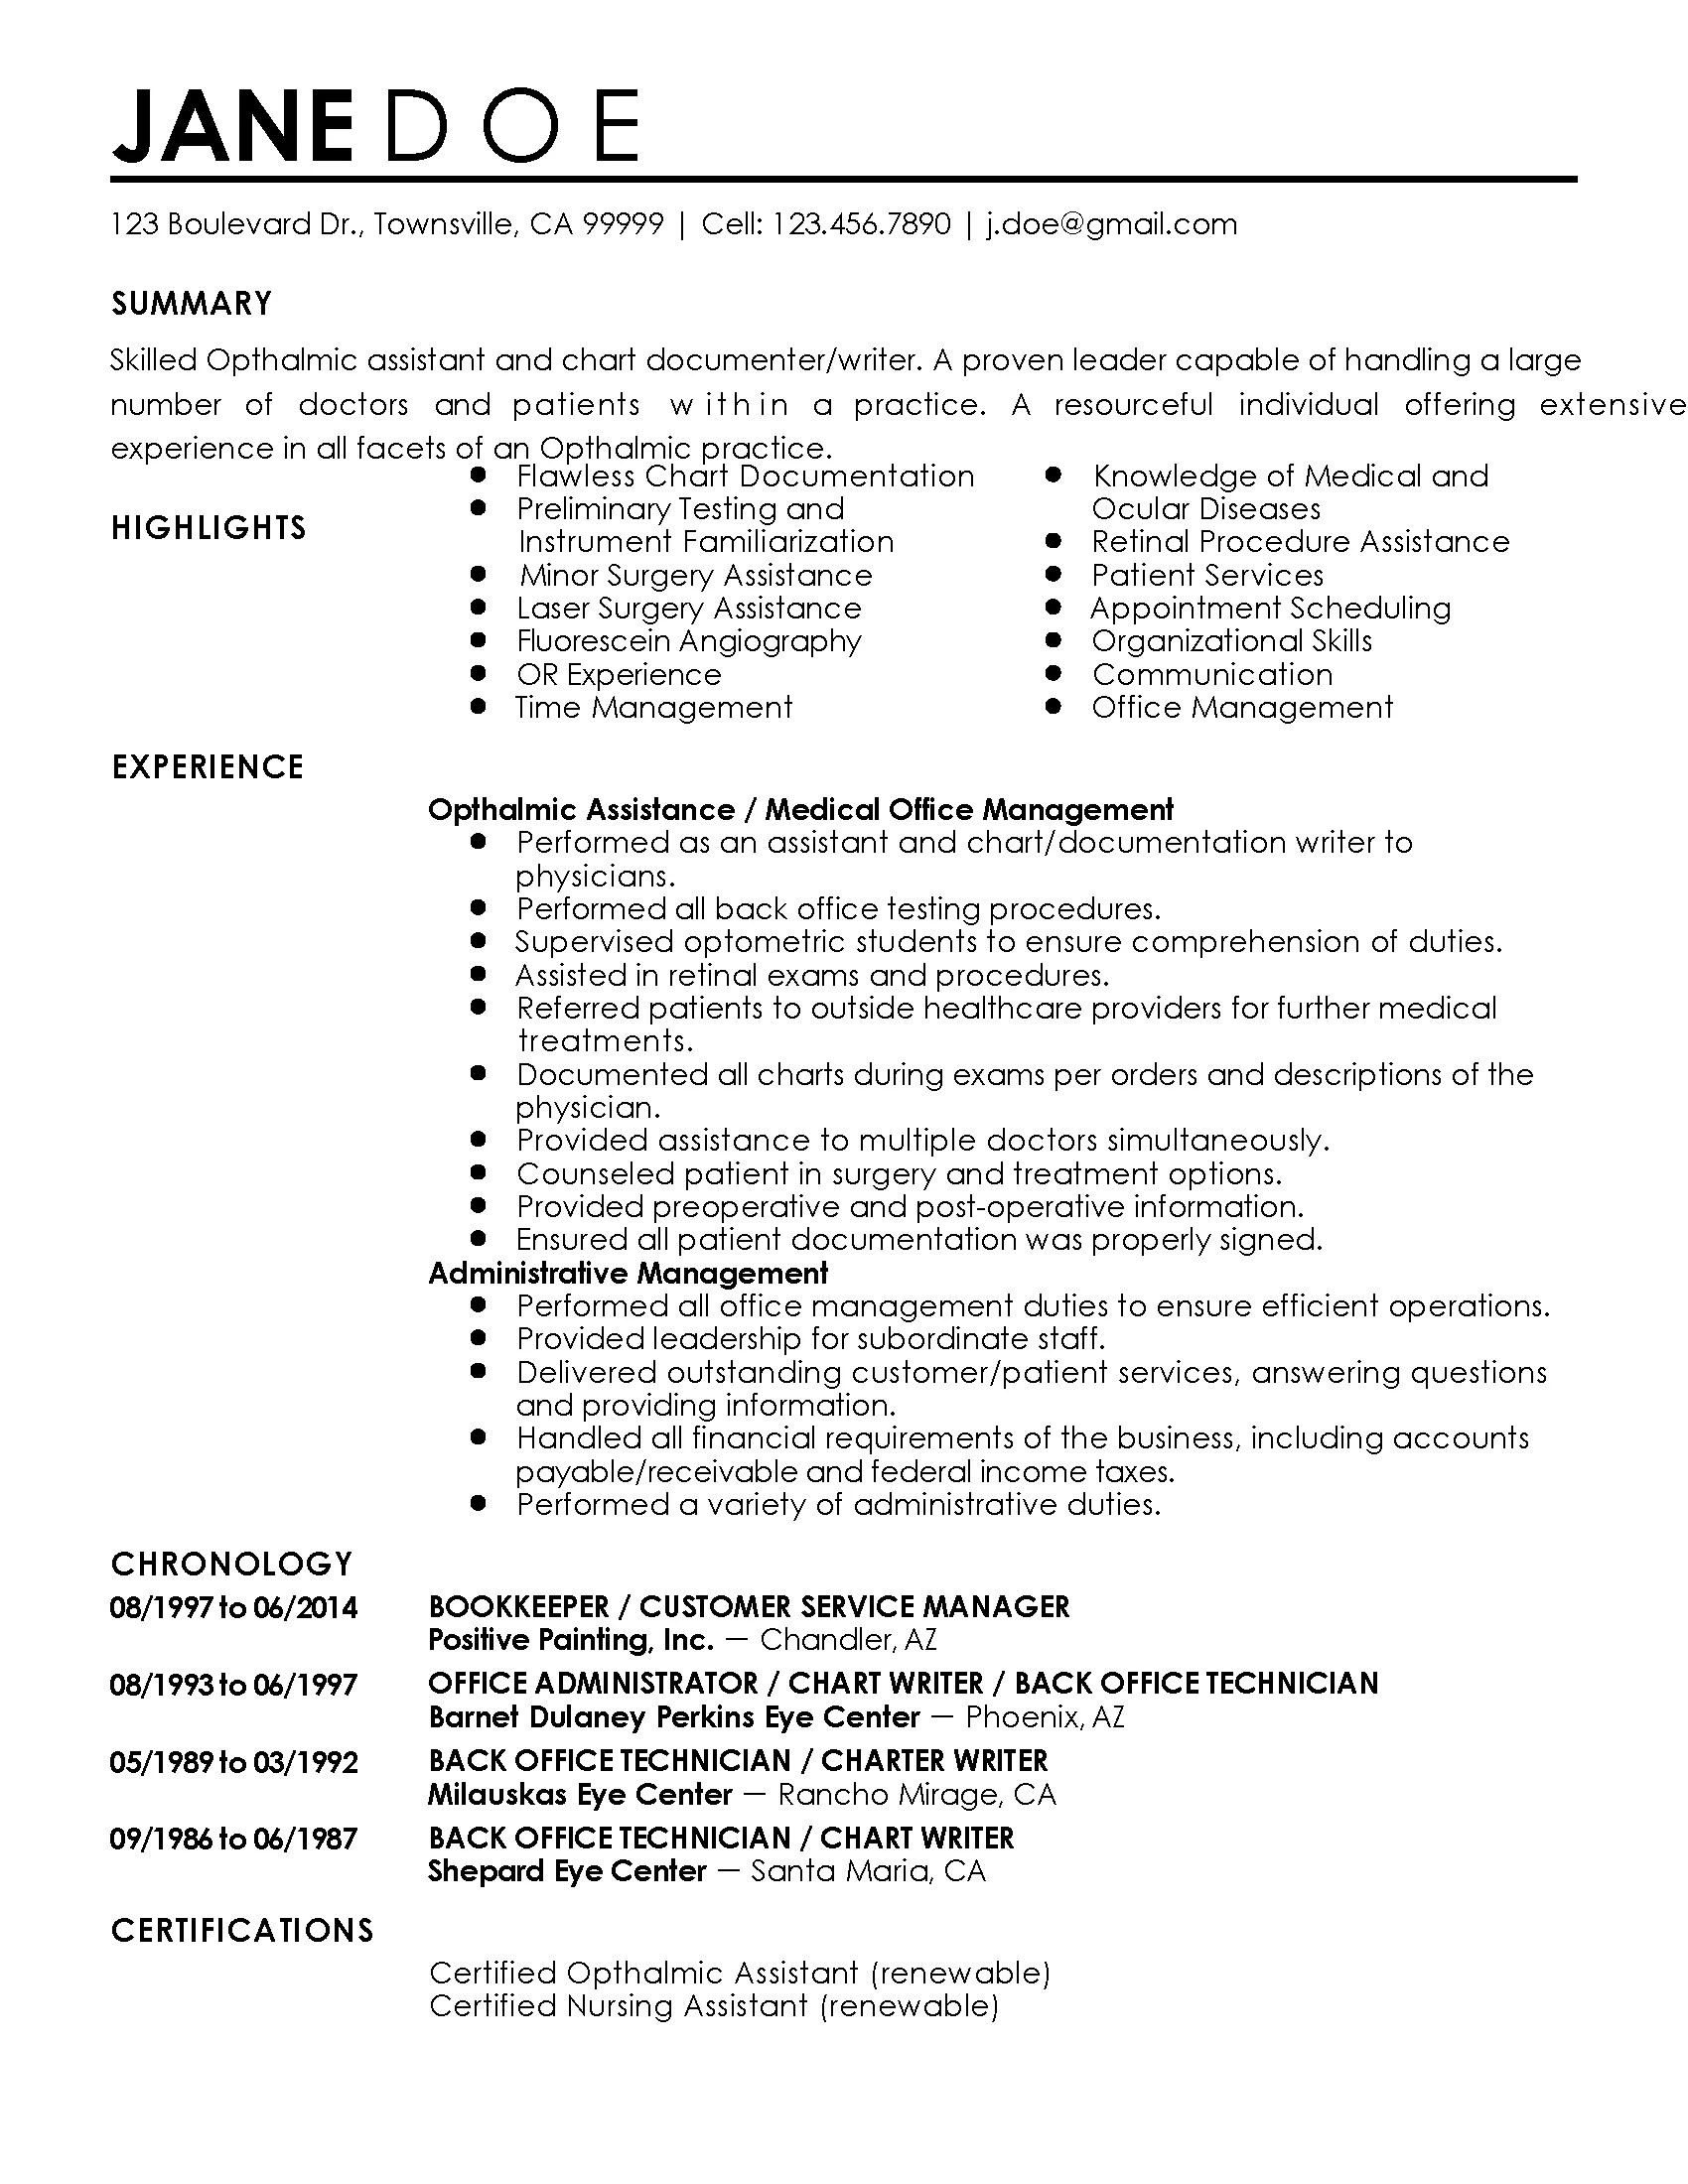 ophthalmic technician resumes - Tier.brianhenry.co